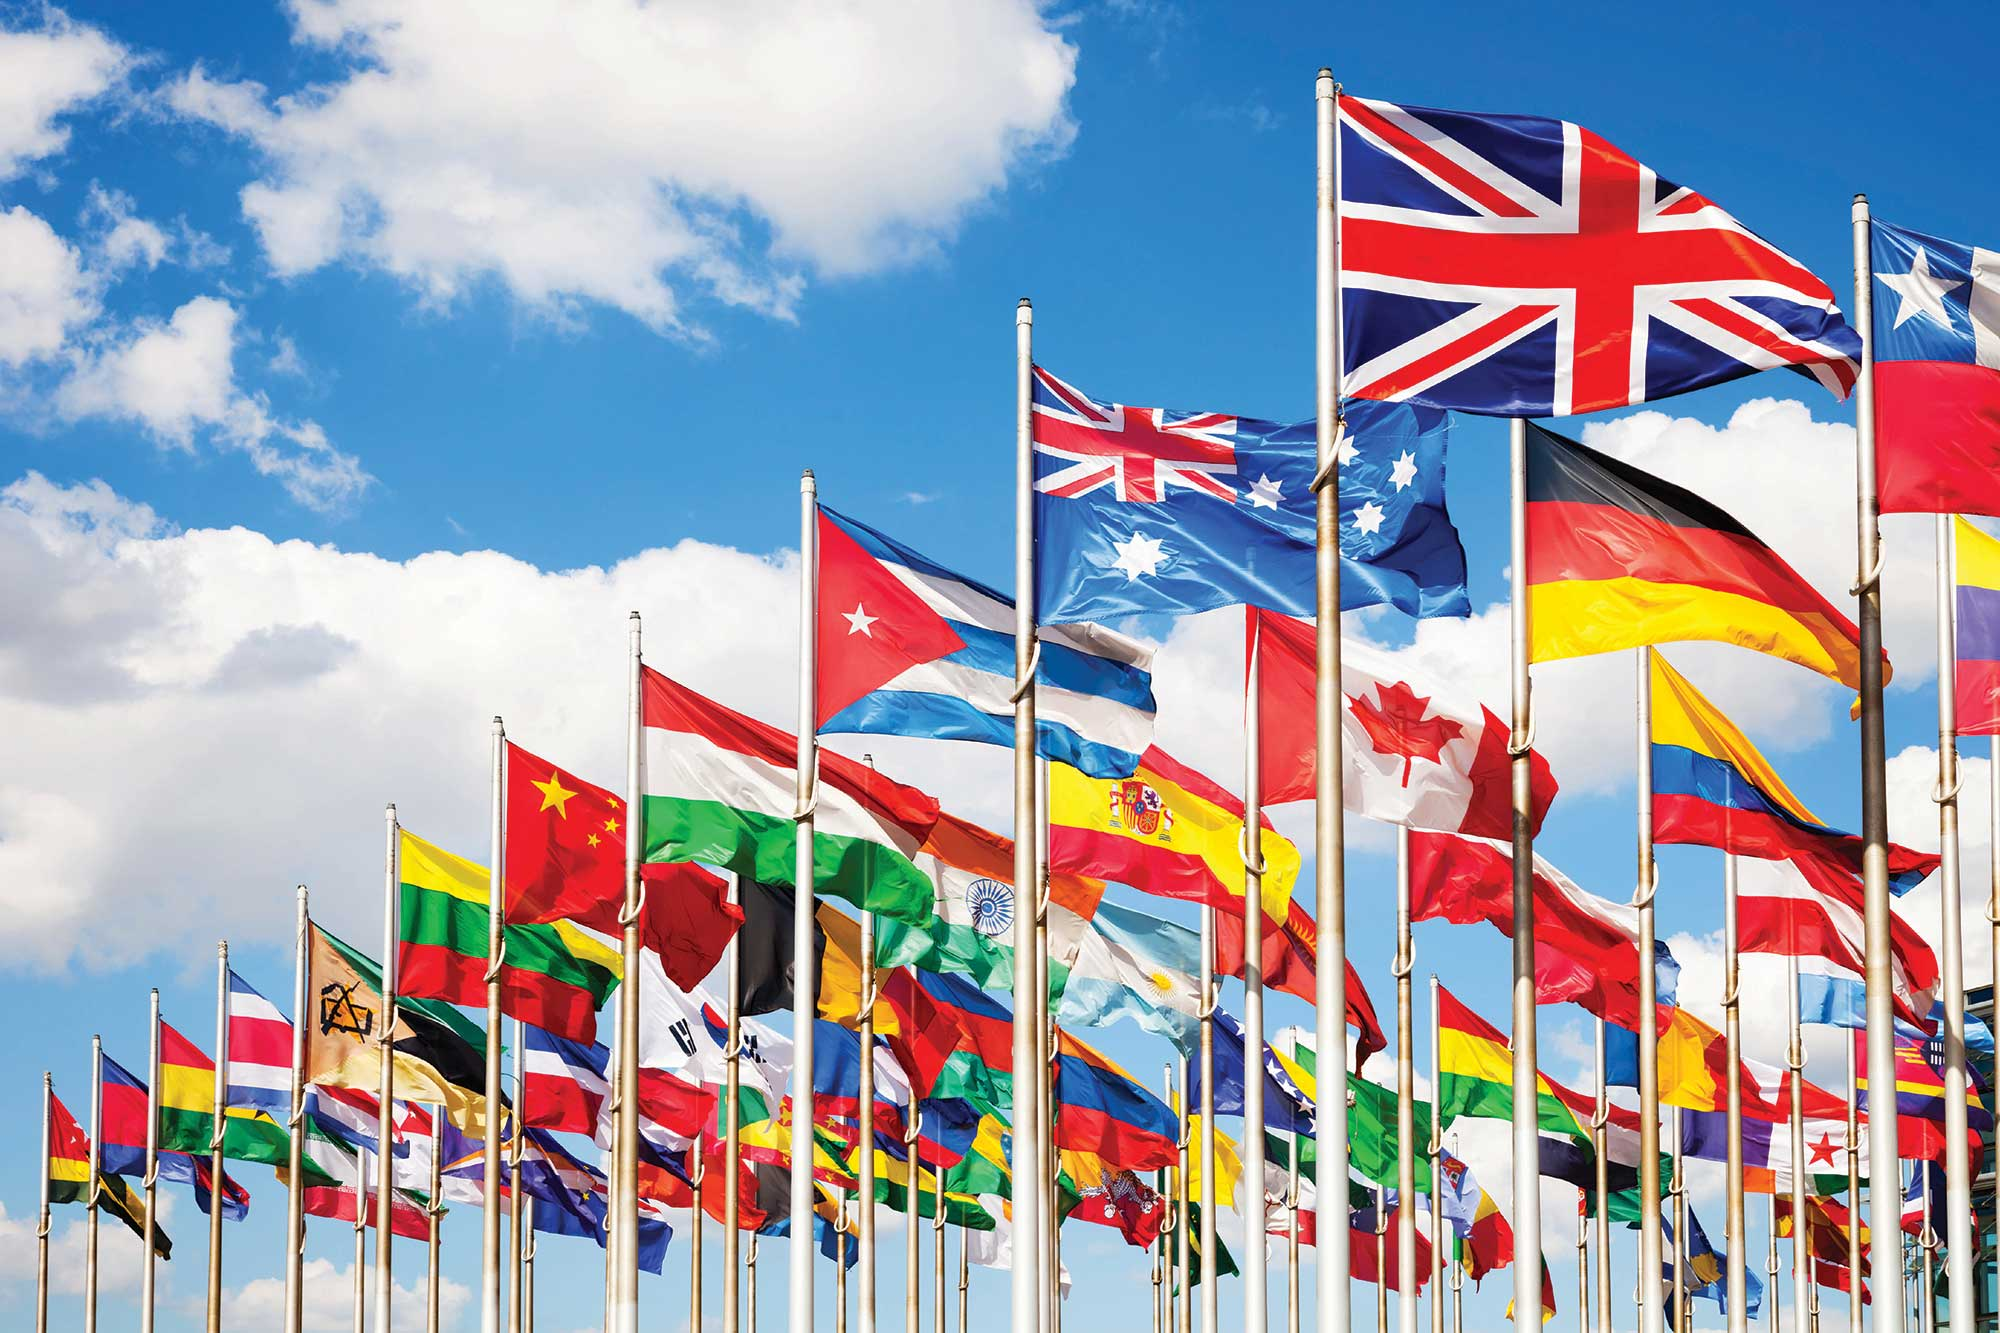 a group of different flags